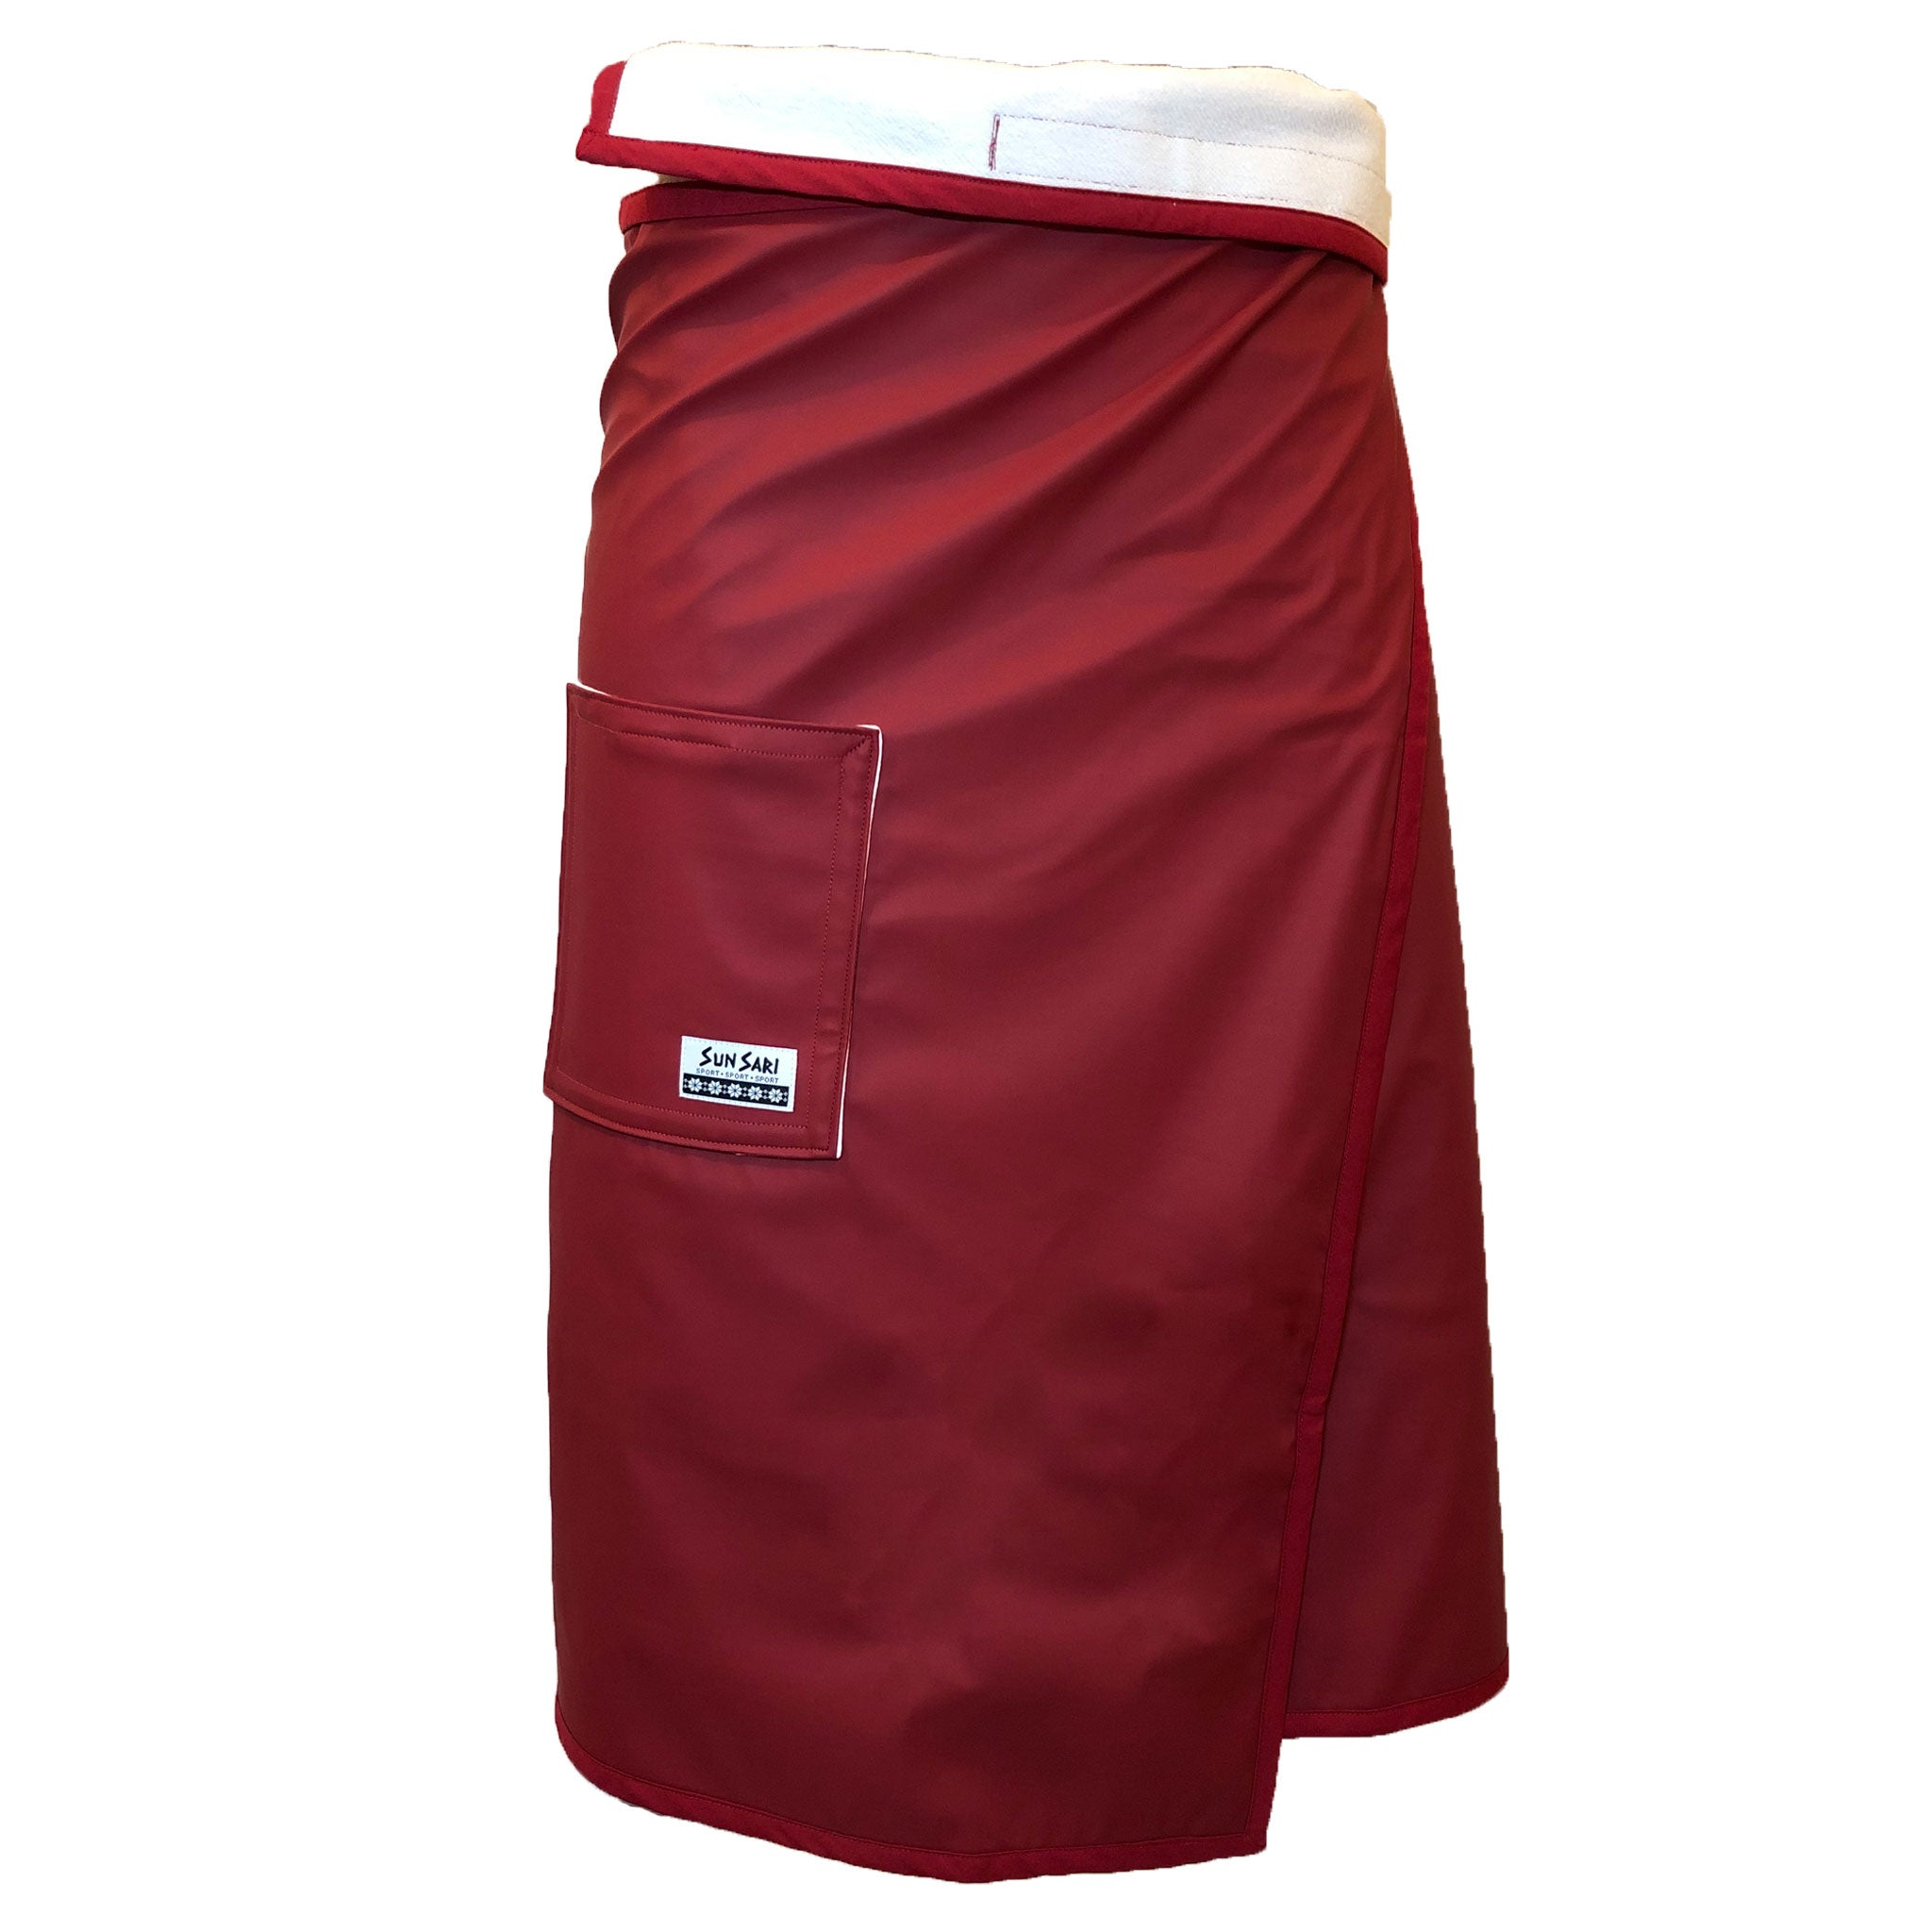 The Crimson SunSari Sport